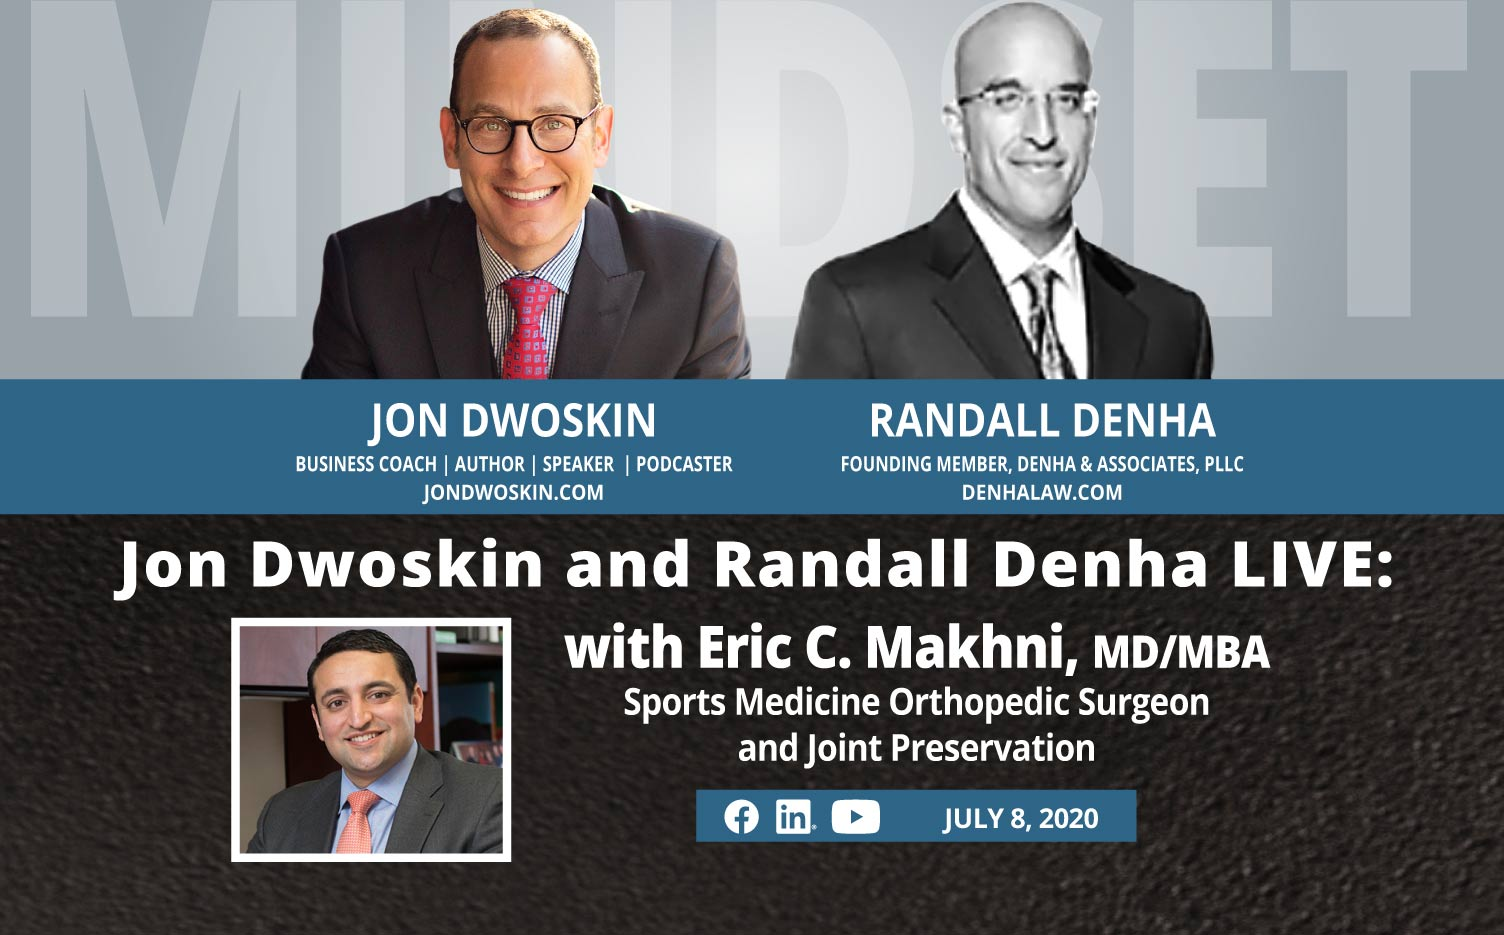 Jon Dwoskin and Randall Denha LIVE: With Eric C. Makhni, MD/MBA